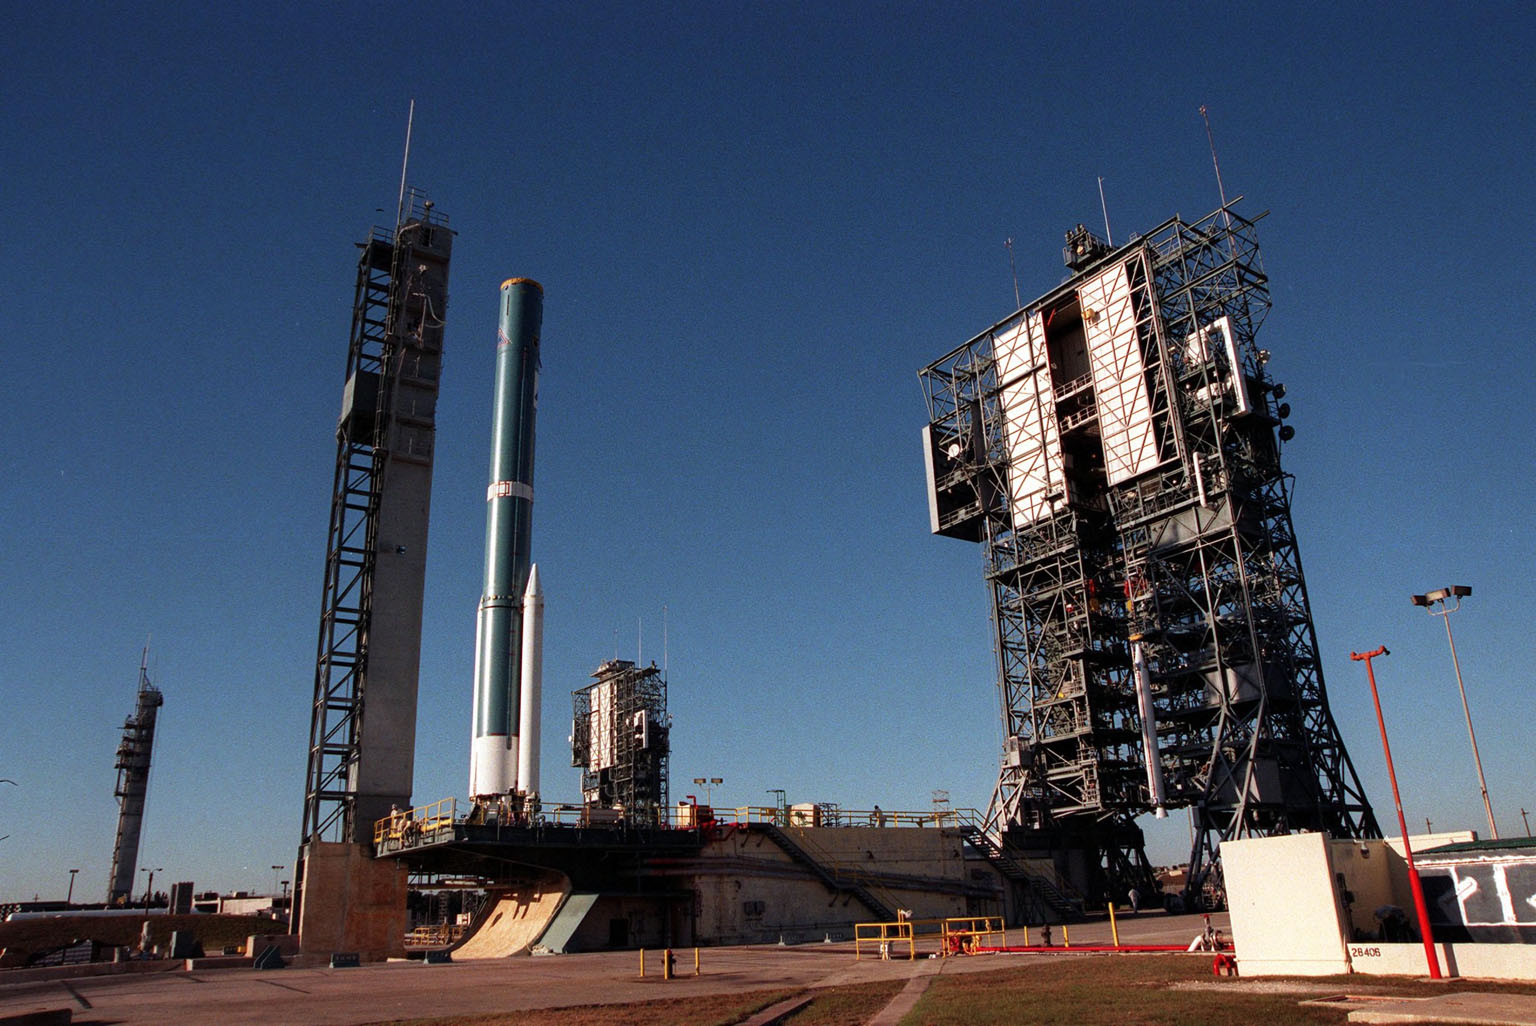 A Boeing Delta II rocket sits on Launch Pad 17A (left), Cape Canaveral Air Station, before mating with its final Solid Rocket Booster, in the tower at right. In the background is Pad 17B with its two launch tower components. The Delta II rocket will carry the Stardust satellite into space for a close encounter with the comet Wild 2 in January 2004. Using a medium called aerogel, Stardust will capture comet particles flying off the nucleus of the comet, plus collect interstellar dust for later analysis. The collected samples will return to Earth in a Sample Return Capsule to be jettisoned as Stardust swings by Earth in January 2006. Stardust is scheduled to be launched on Feb. 6, 1999